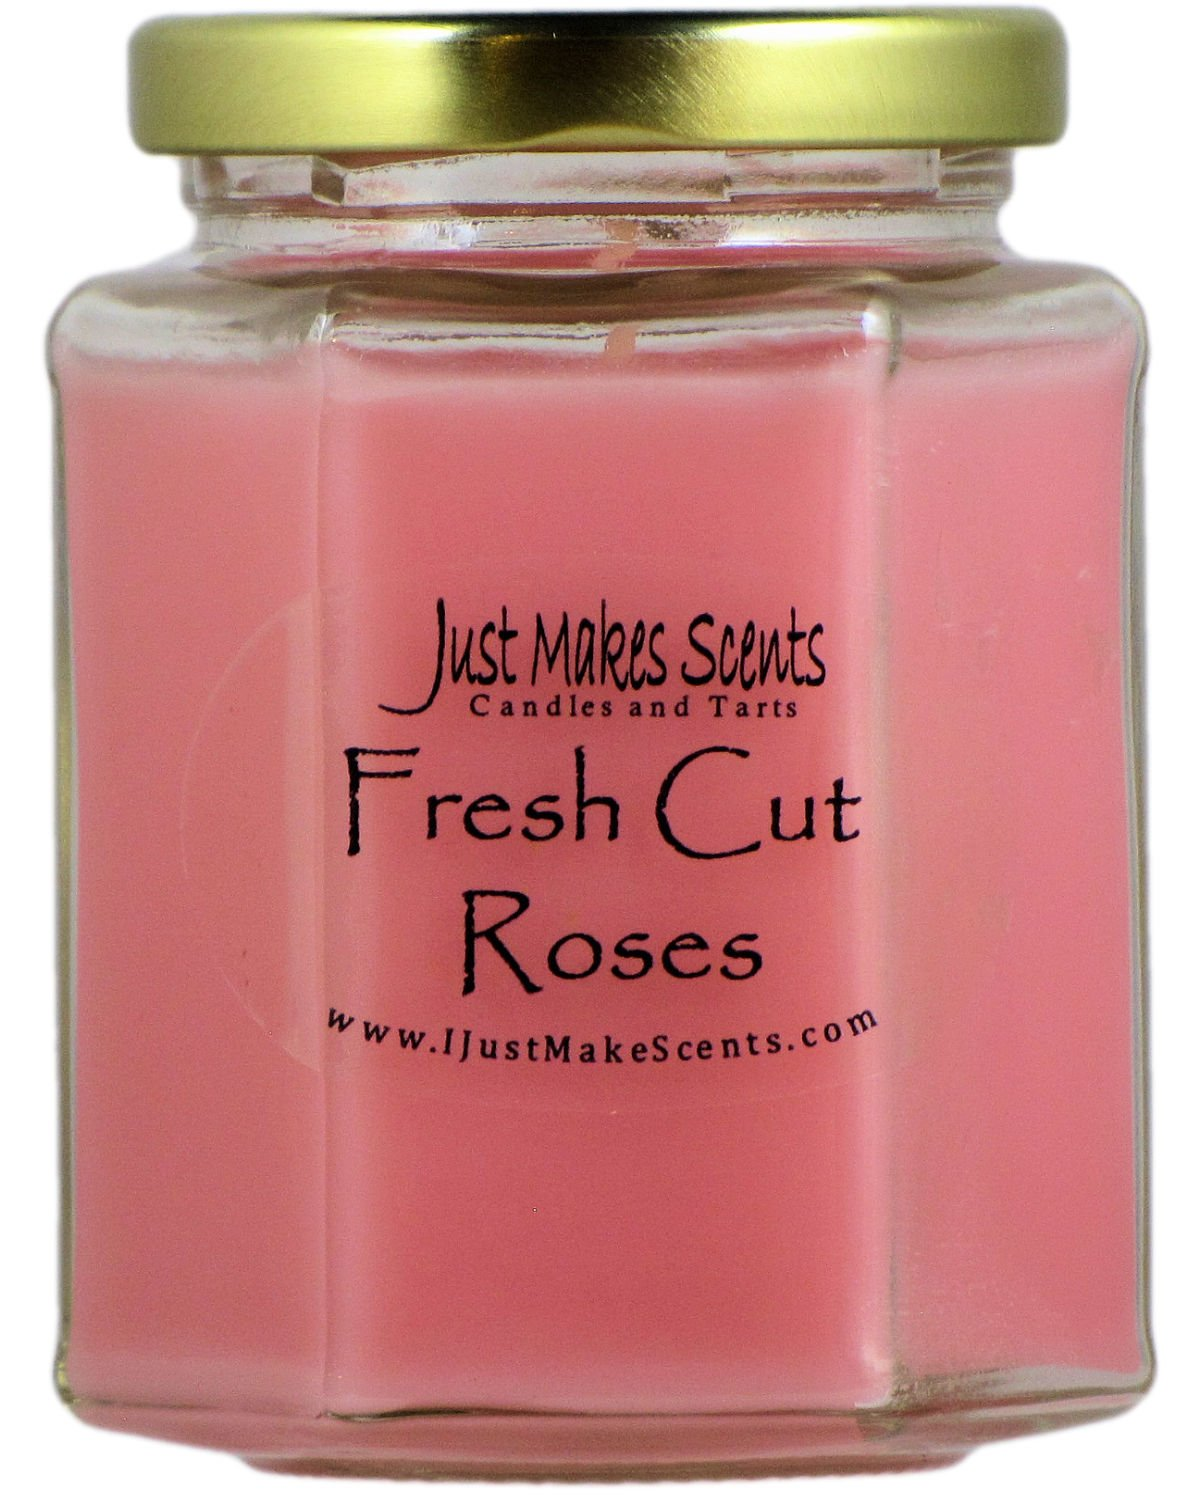 Just Makes Scents Fresh Cut Roses Scented Blended Soy Candle - FRESH CUT ROSES: Smells like a beautiful bouquet of fresh roses FRAGRANT: Fills the room with amazing rose fragrance LONG LASTING: 8 oz jar candle burns for approximately 40 hours - living-room-decor, living-room, candles - 71O6QcCkIrL -